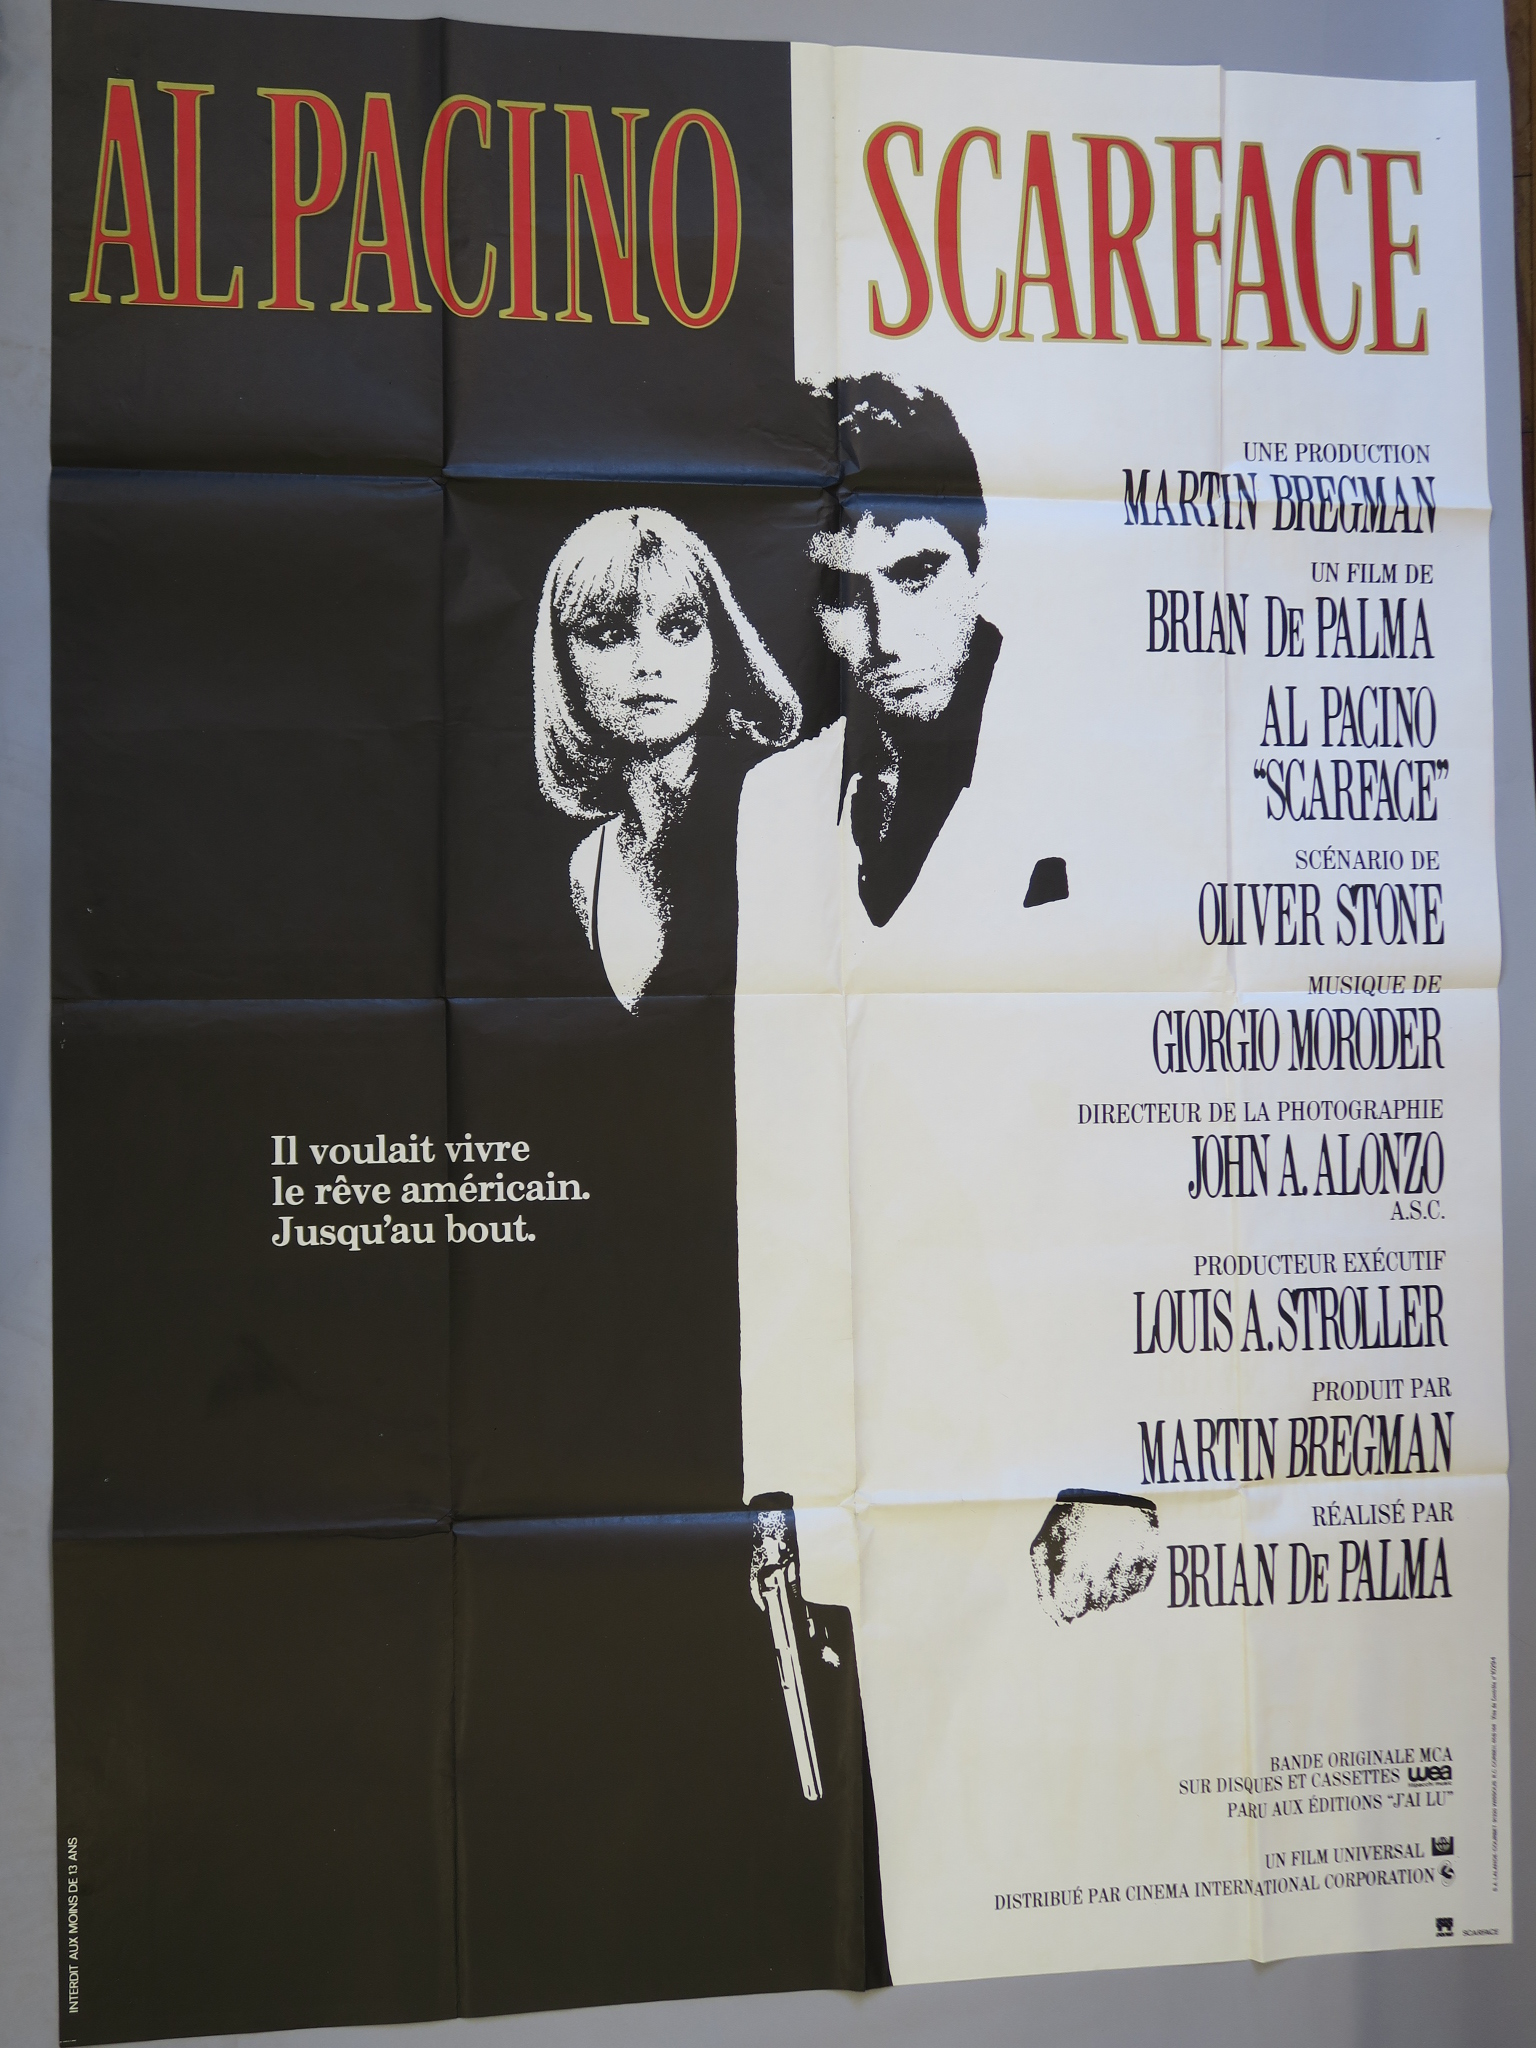 Lot 30 - Scarface French Grande film poster with the iconic image of Al Pacino as Scarface directed by Brian